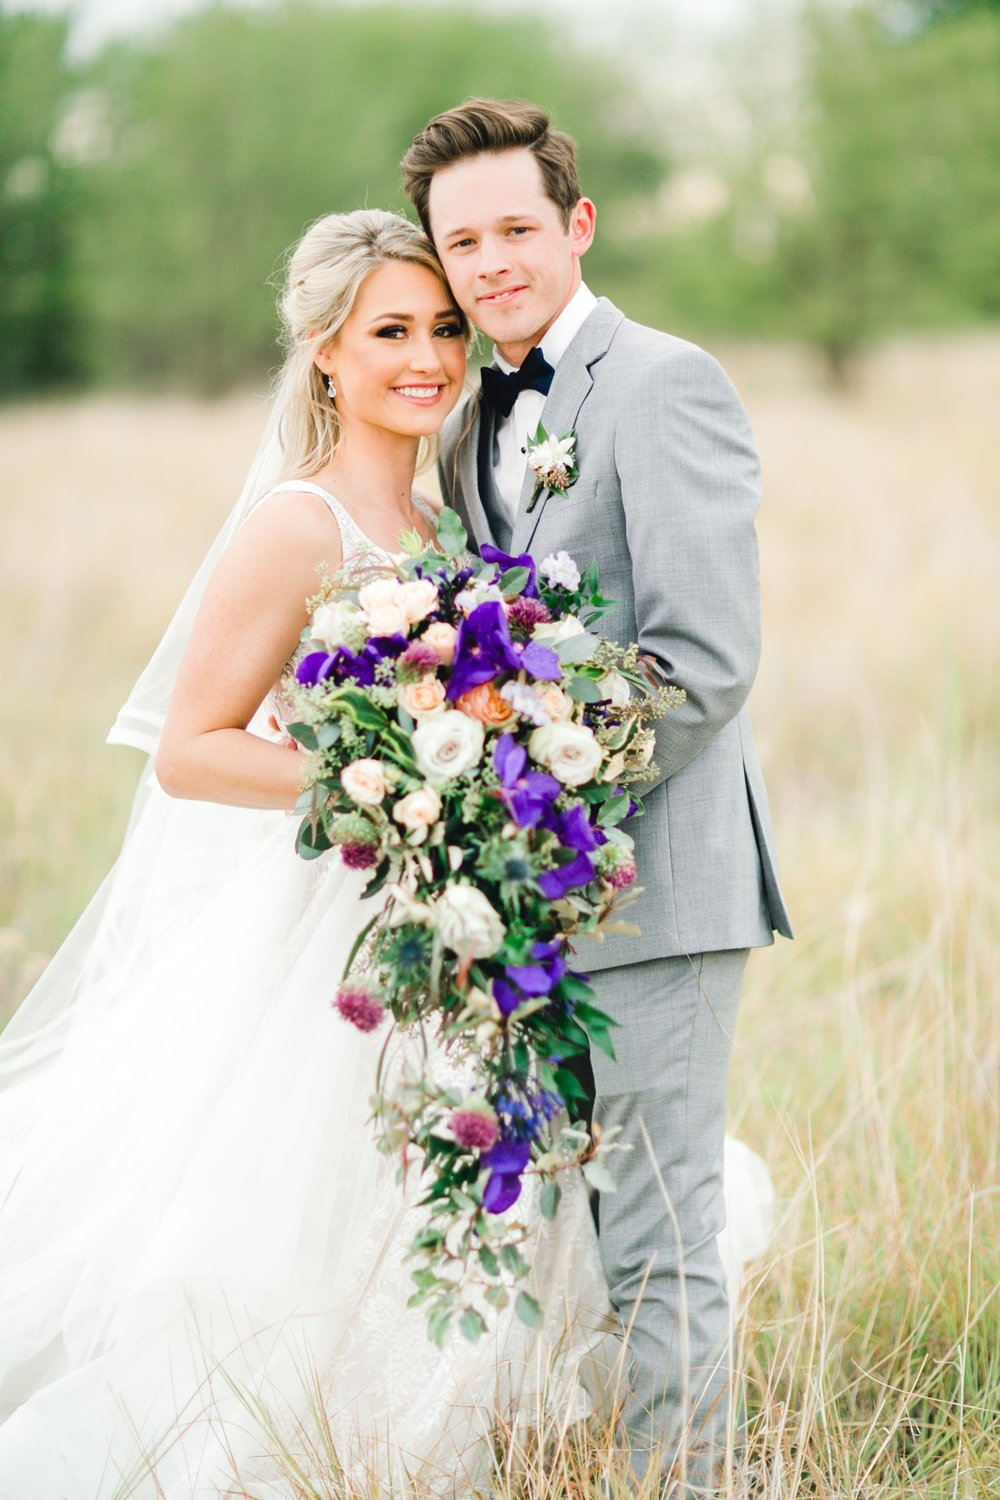 KAITLYN_AND_ZACHARY_HUNT_ALLEEJ_LUBBOCK_WEDDING_PHOTOGRAPHER_EBERLEY_BROOKS_EVENTS_0135.jpg